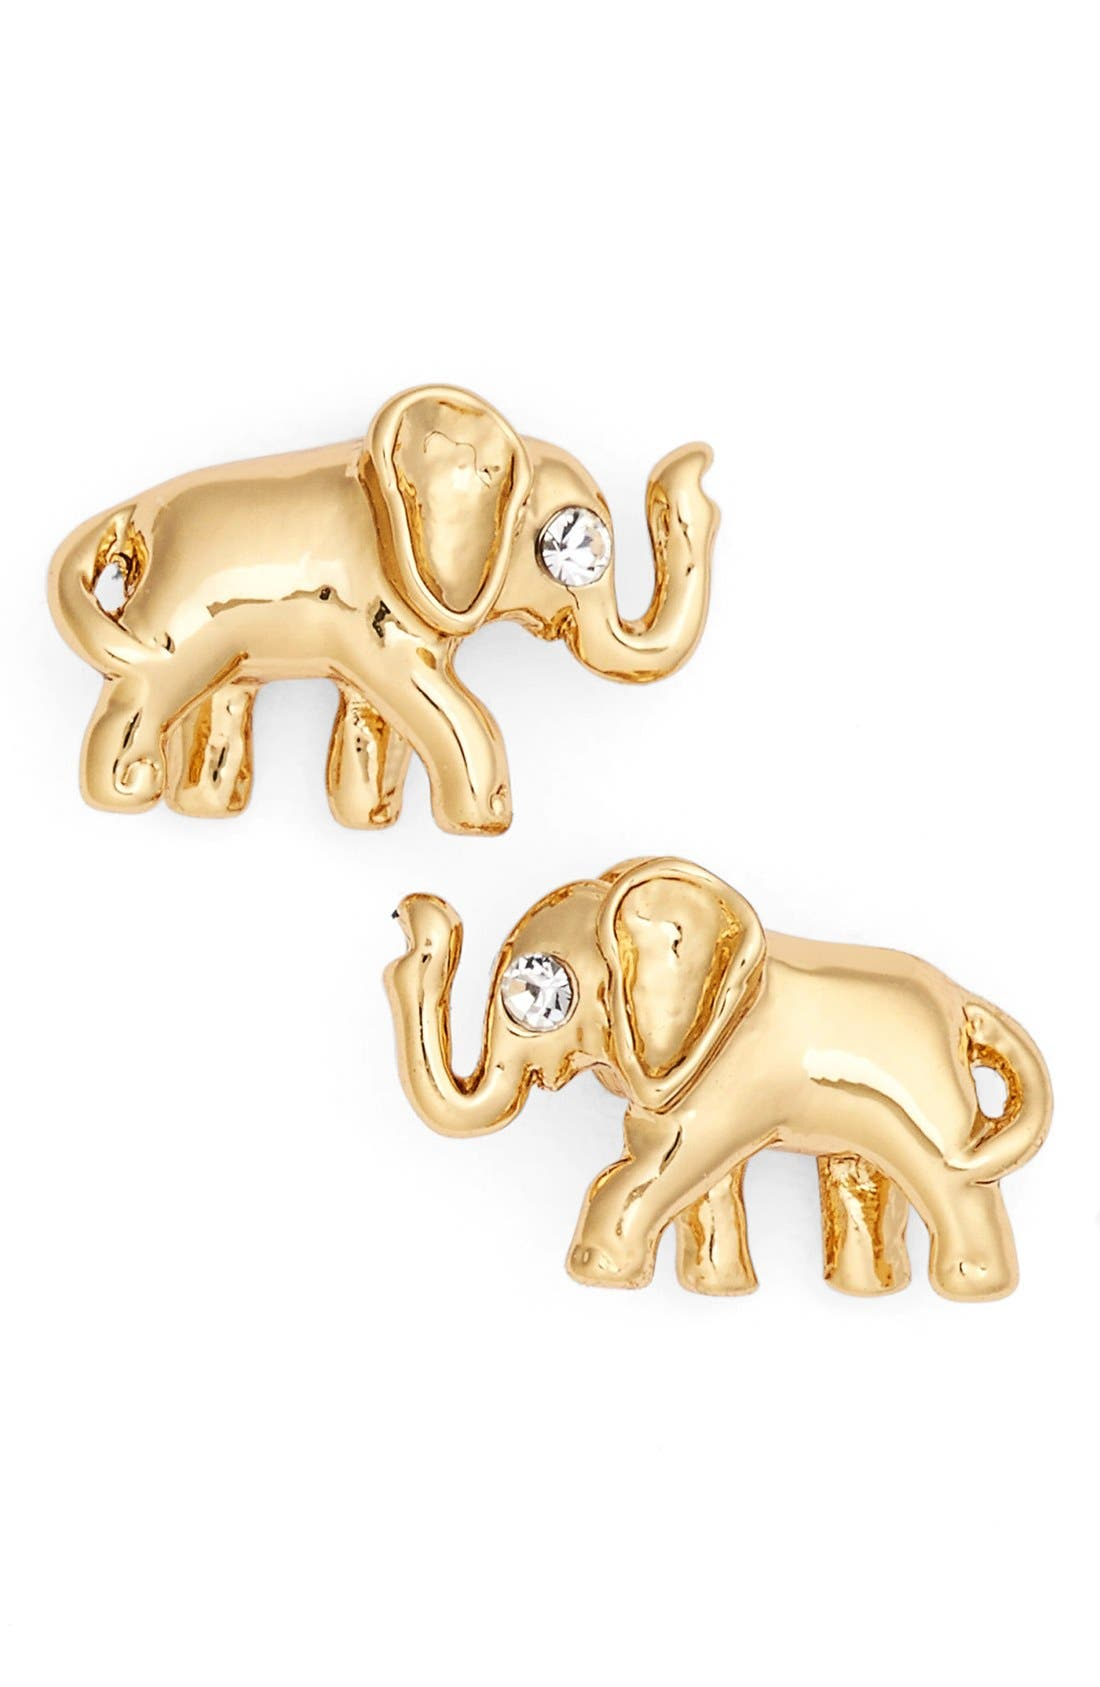 Main Image - kate spade new york elephant stud earrings